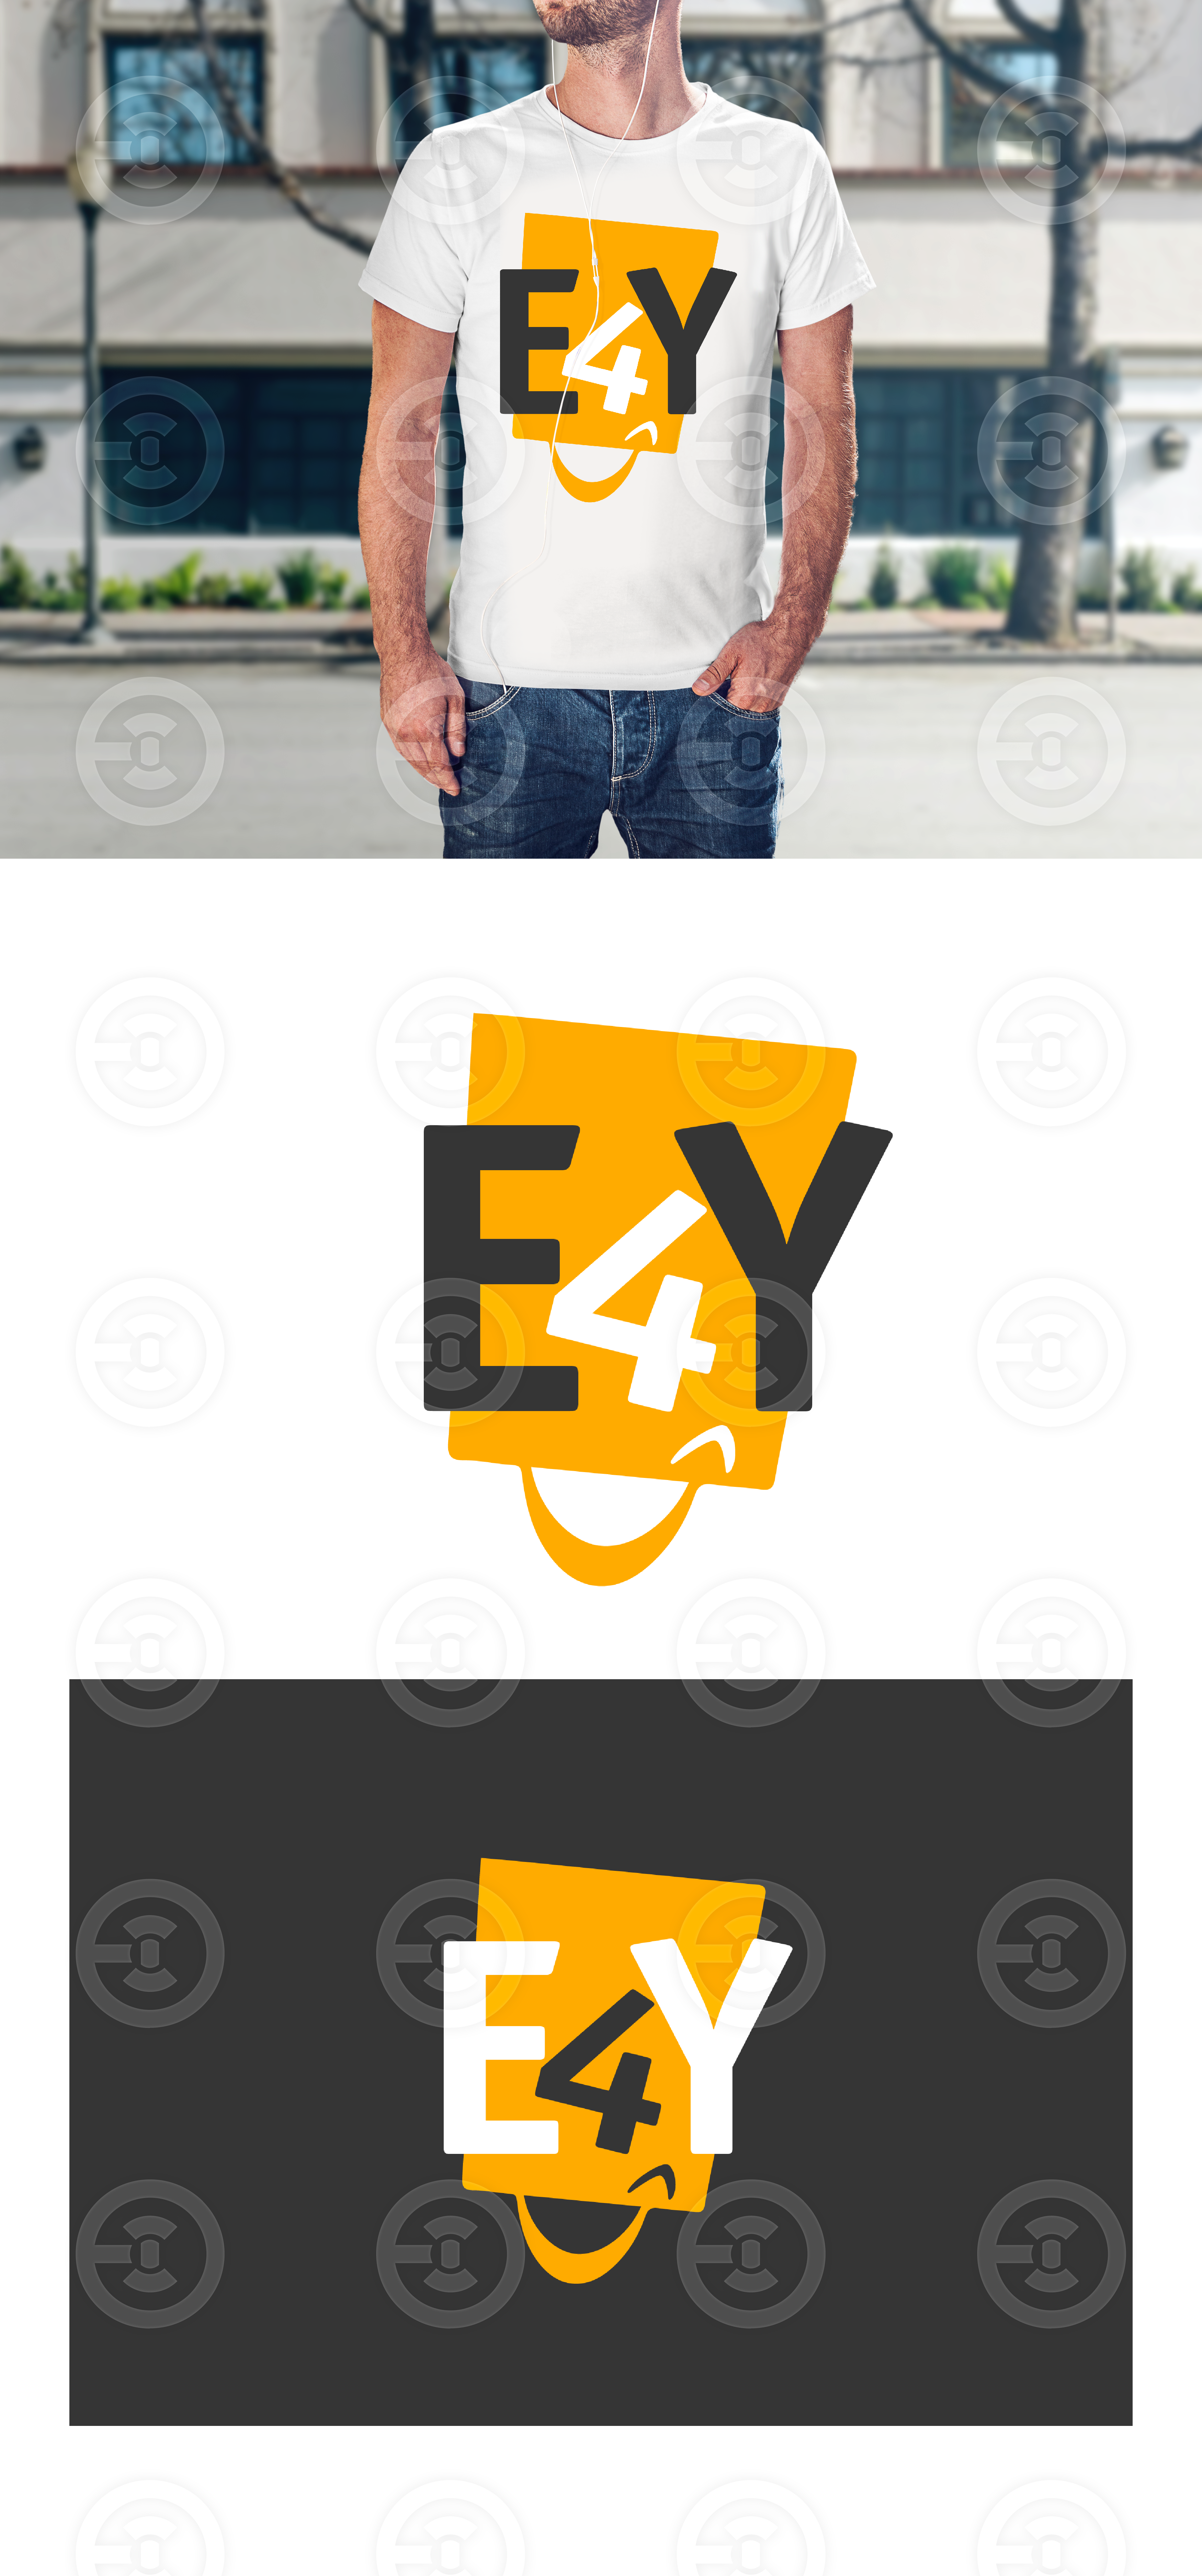 e4y_02.png